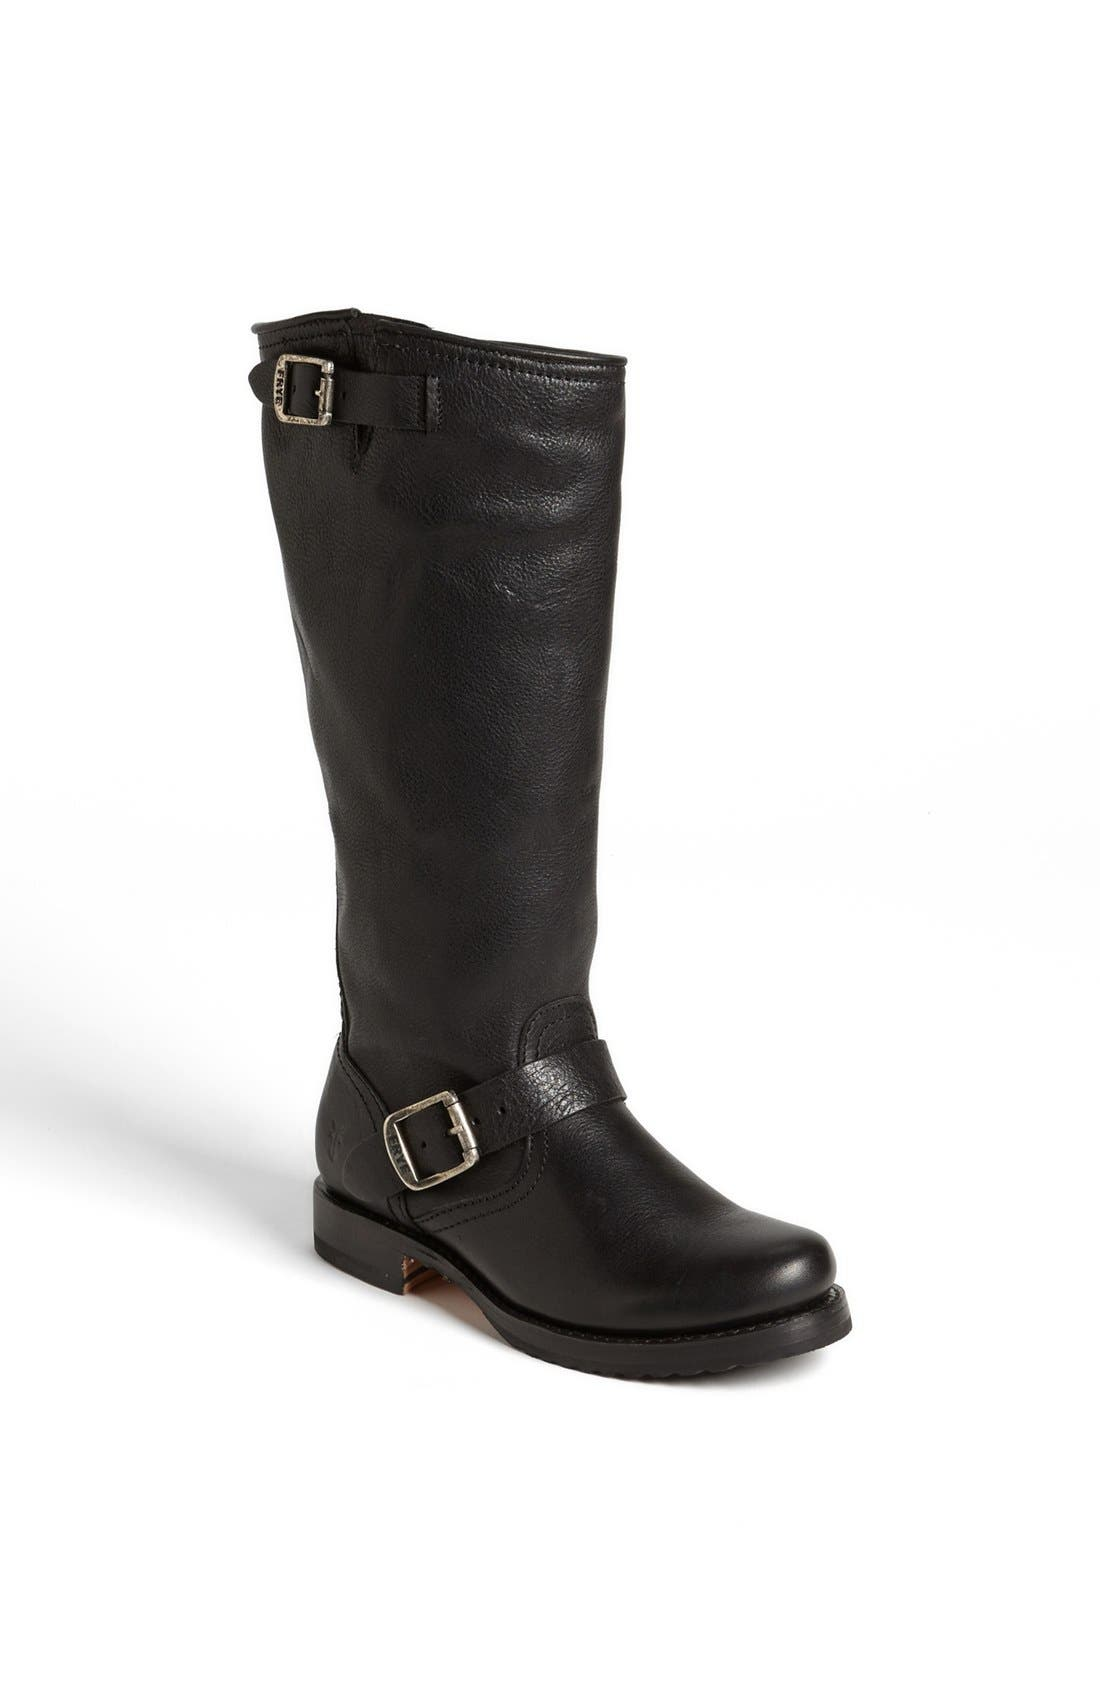 Main Image - Frye 'Veronica Slouch' Boot (Wide Calf) (Women)